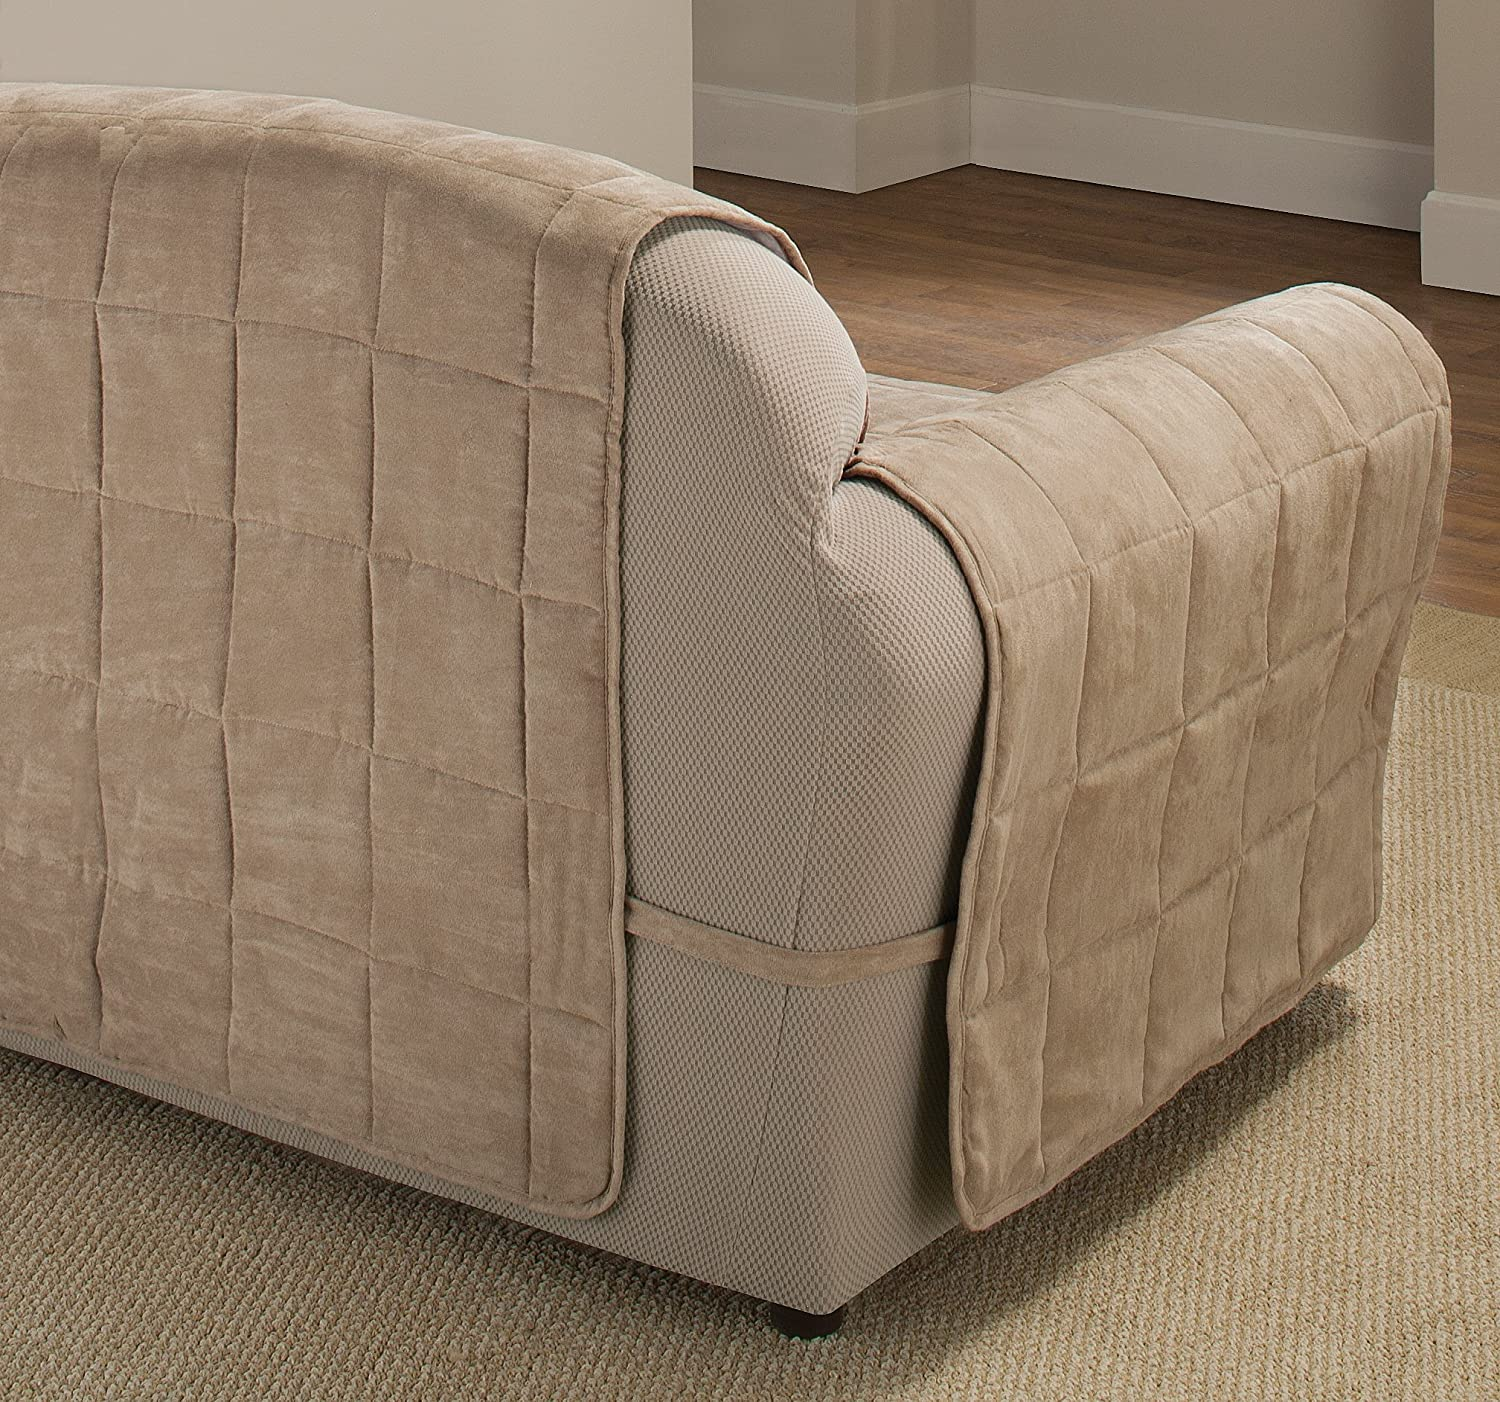 ULTIMATE FURNITURE PROTECTOR PET DOG SLIP COVER SOFA CHAIR  : 91WVmUlP9tLSL1500 from ebay.co.uk size 1500 x 1402 jpeg 581kB